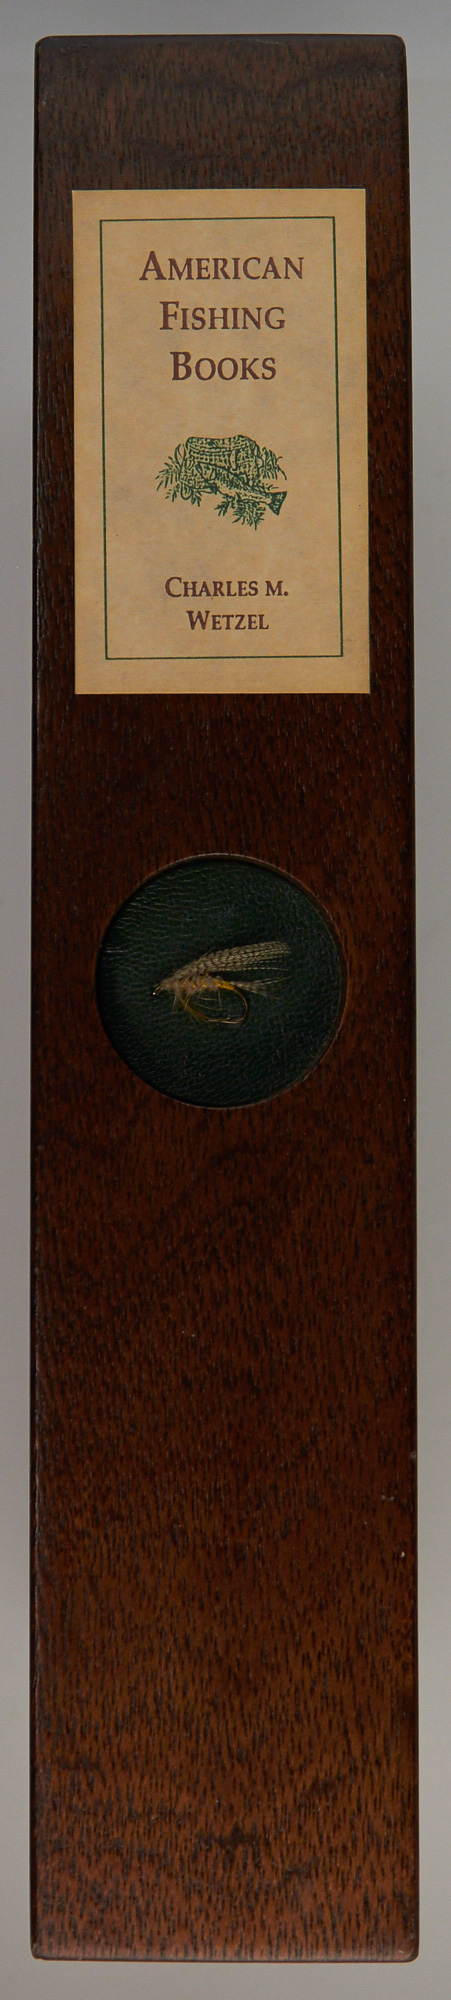 Lot image - [BIBLIOGRAPHY]  WETZEL, CHARLES M.  American Fishing Books.